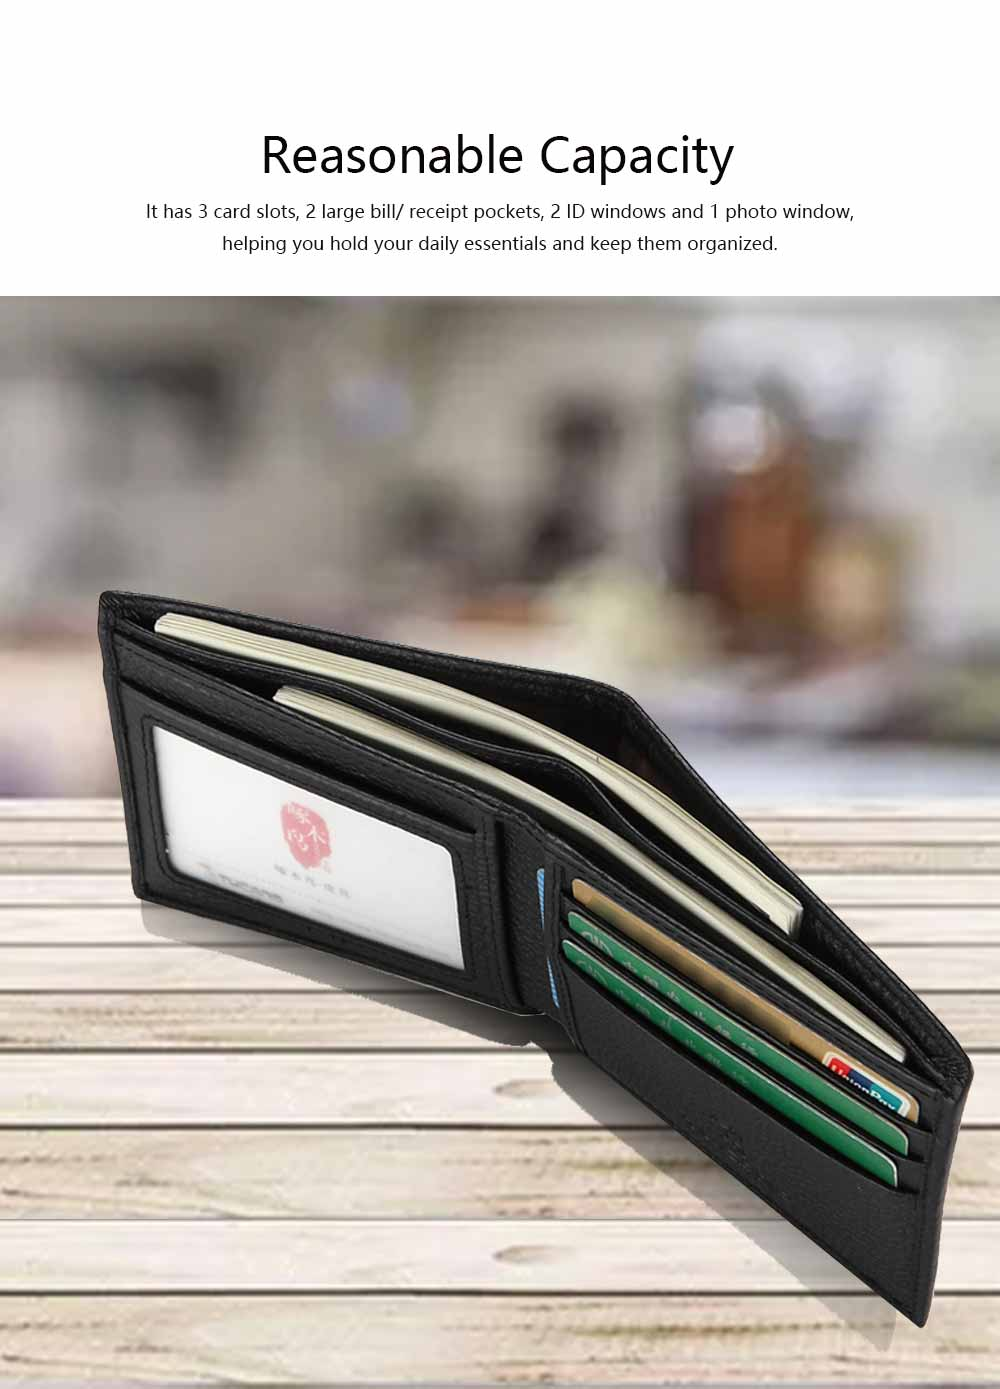 Bifold Side Flip Wallet, High-End Business Men Wallet, Men's Multifunctional Handbag, Extra Capacity Travel Wallet 2